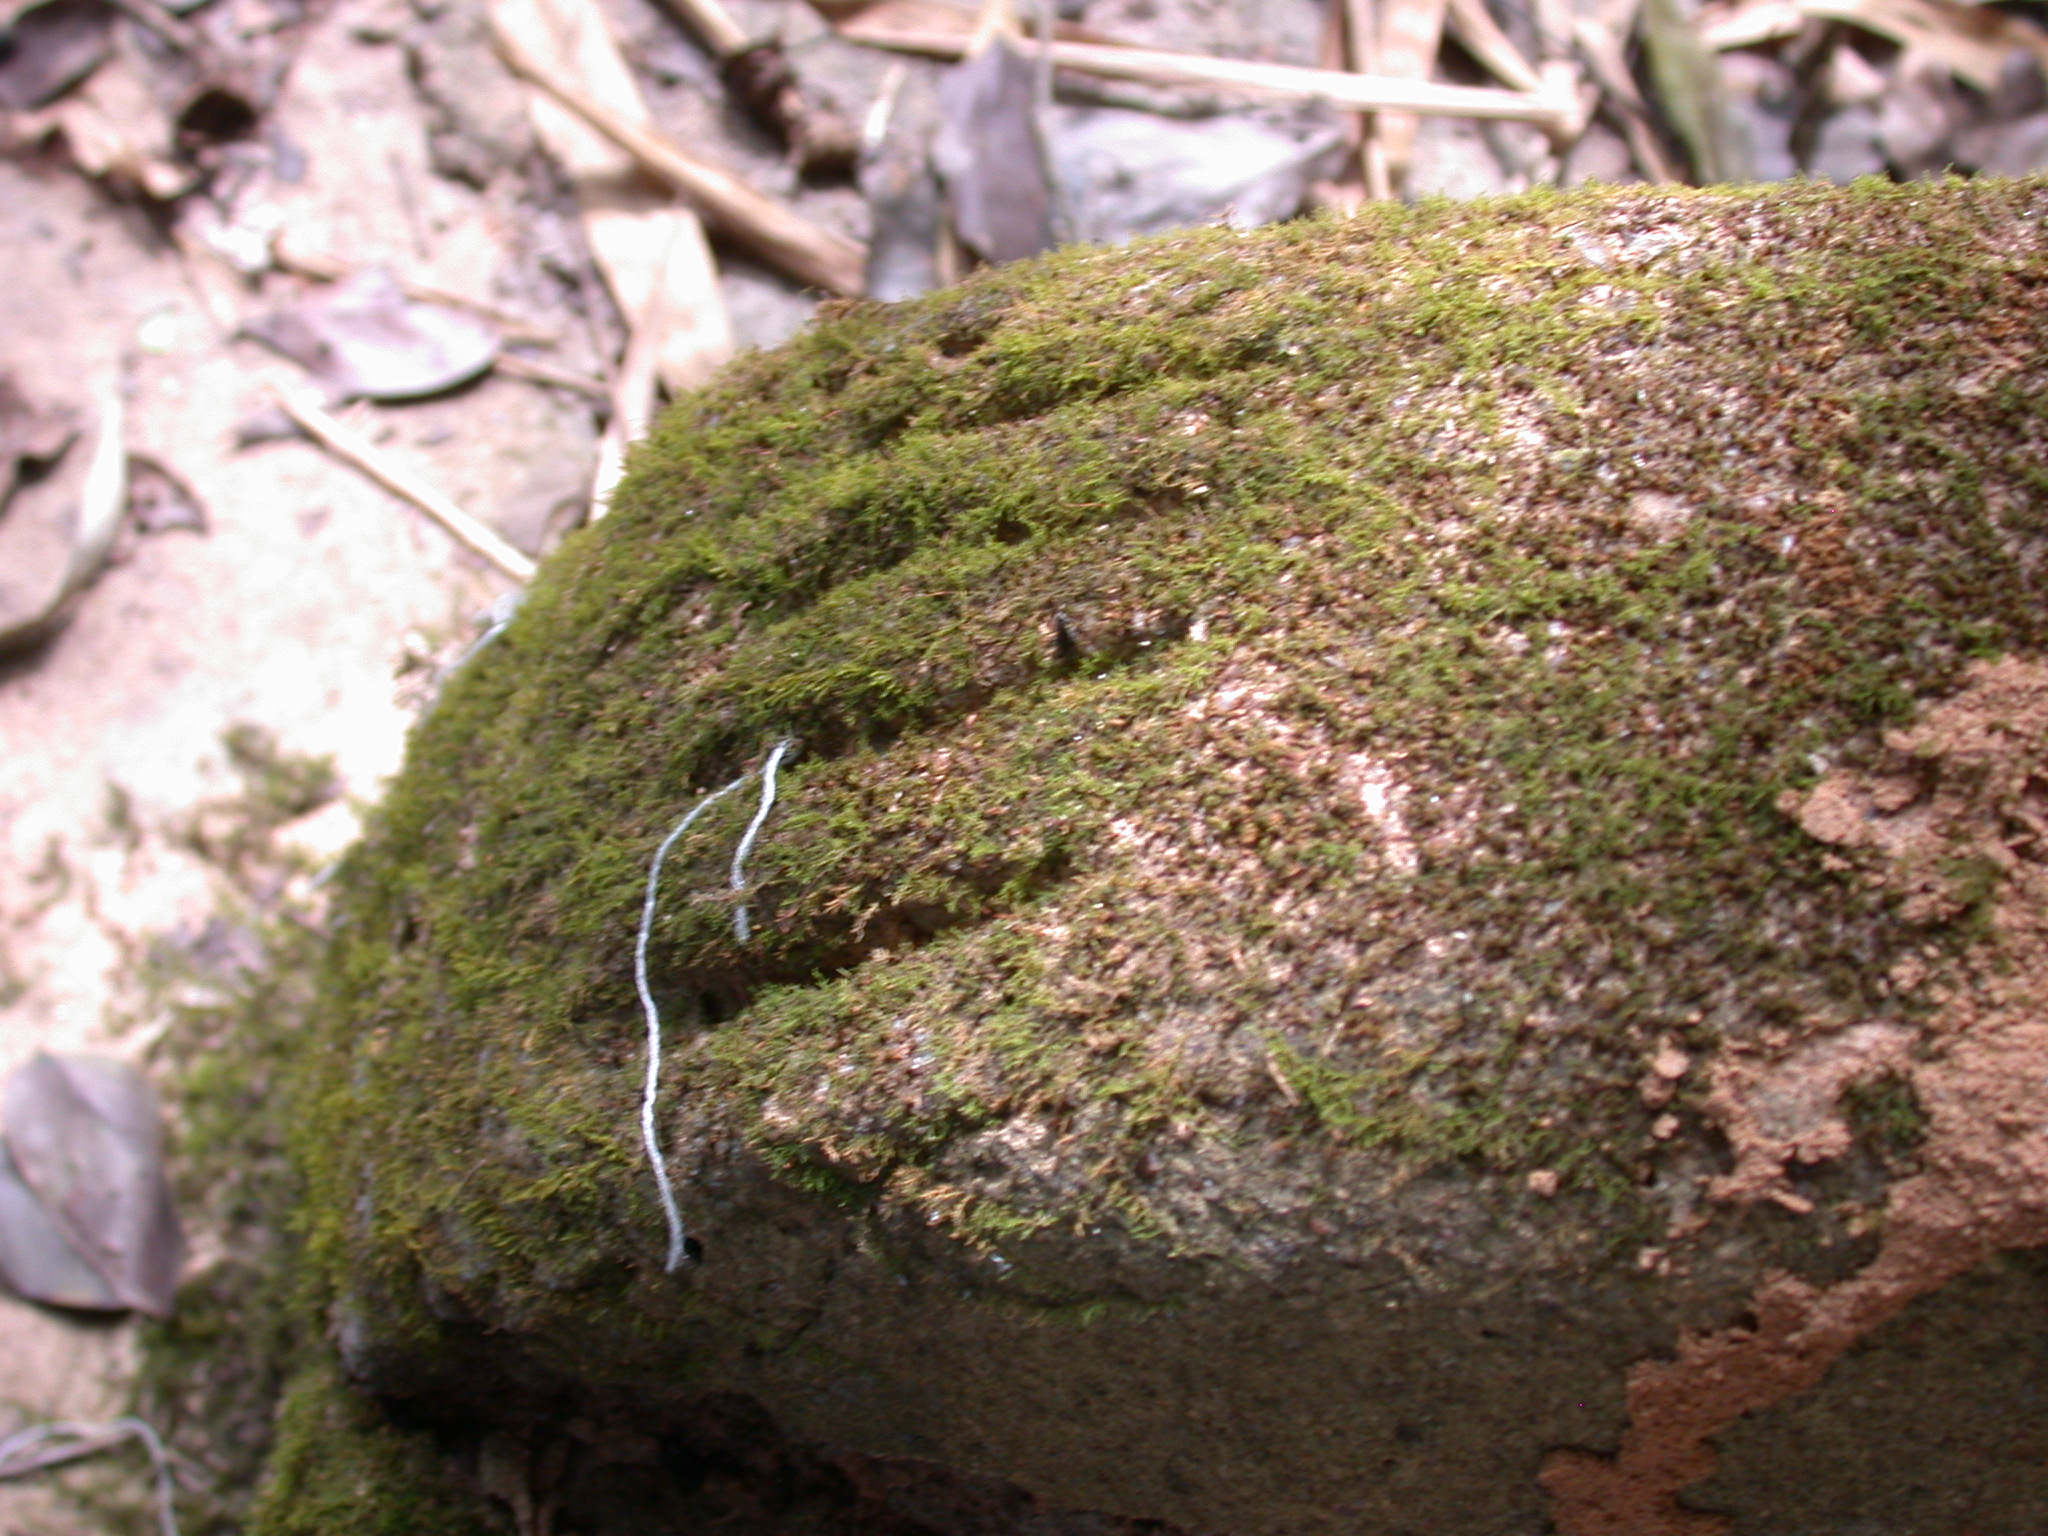 Mossy Foot at Chair Sculpture Shrine, Osun Sacred Grove, Oshogbo, Nigeria